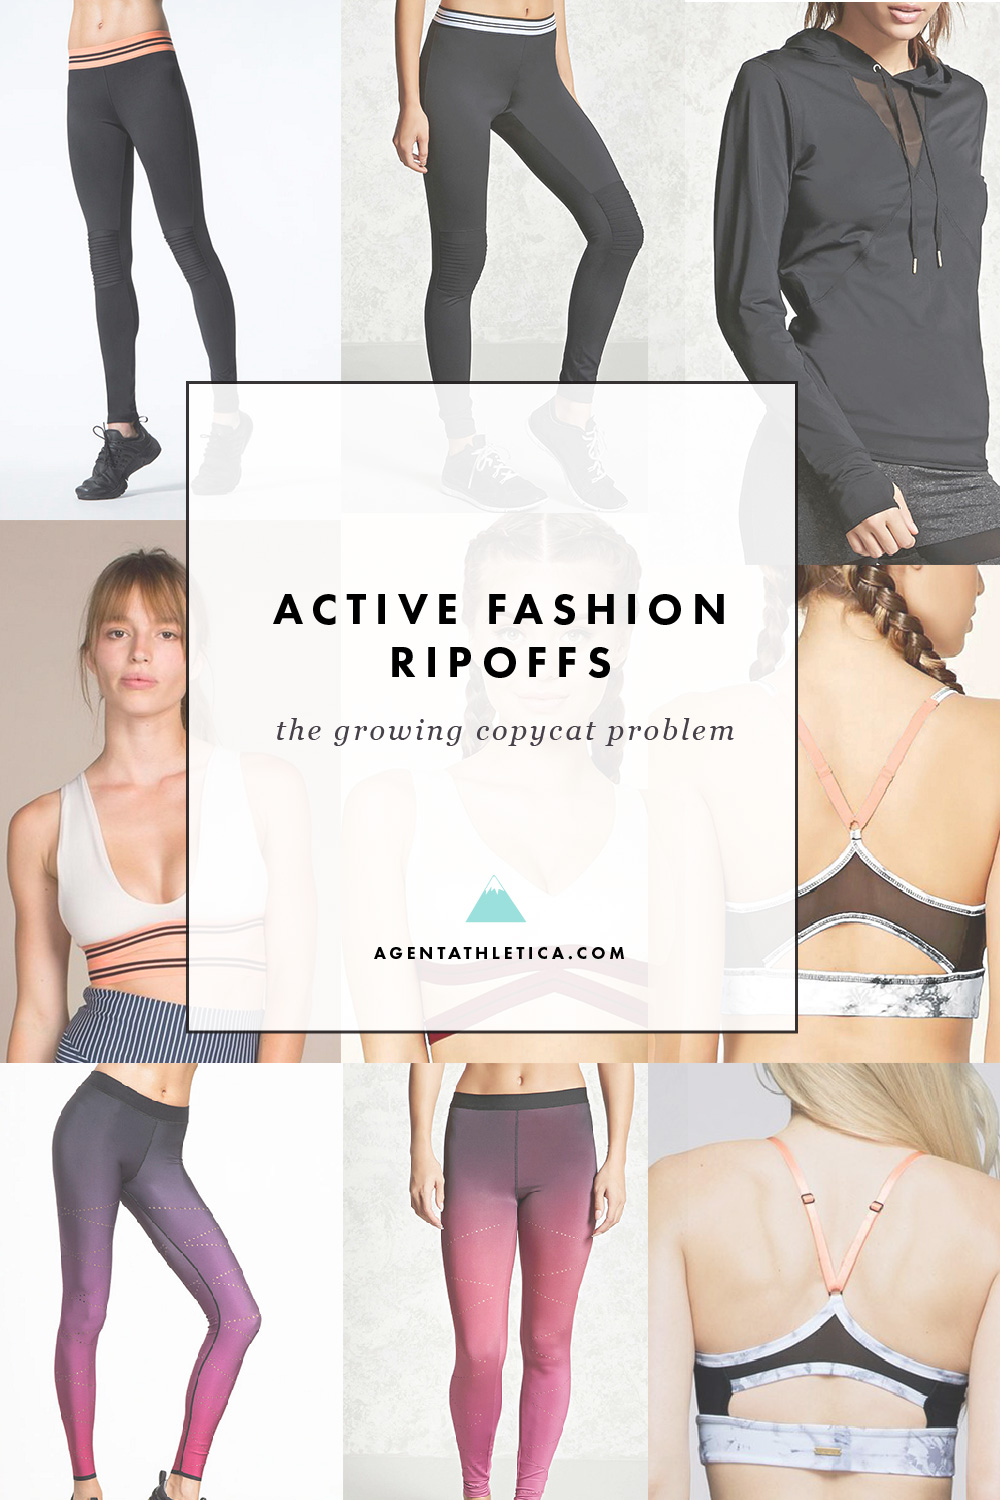 Activewear's wall of ripoff shame